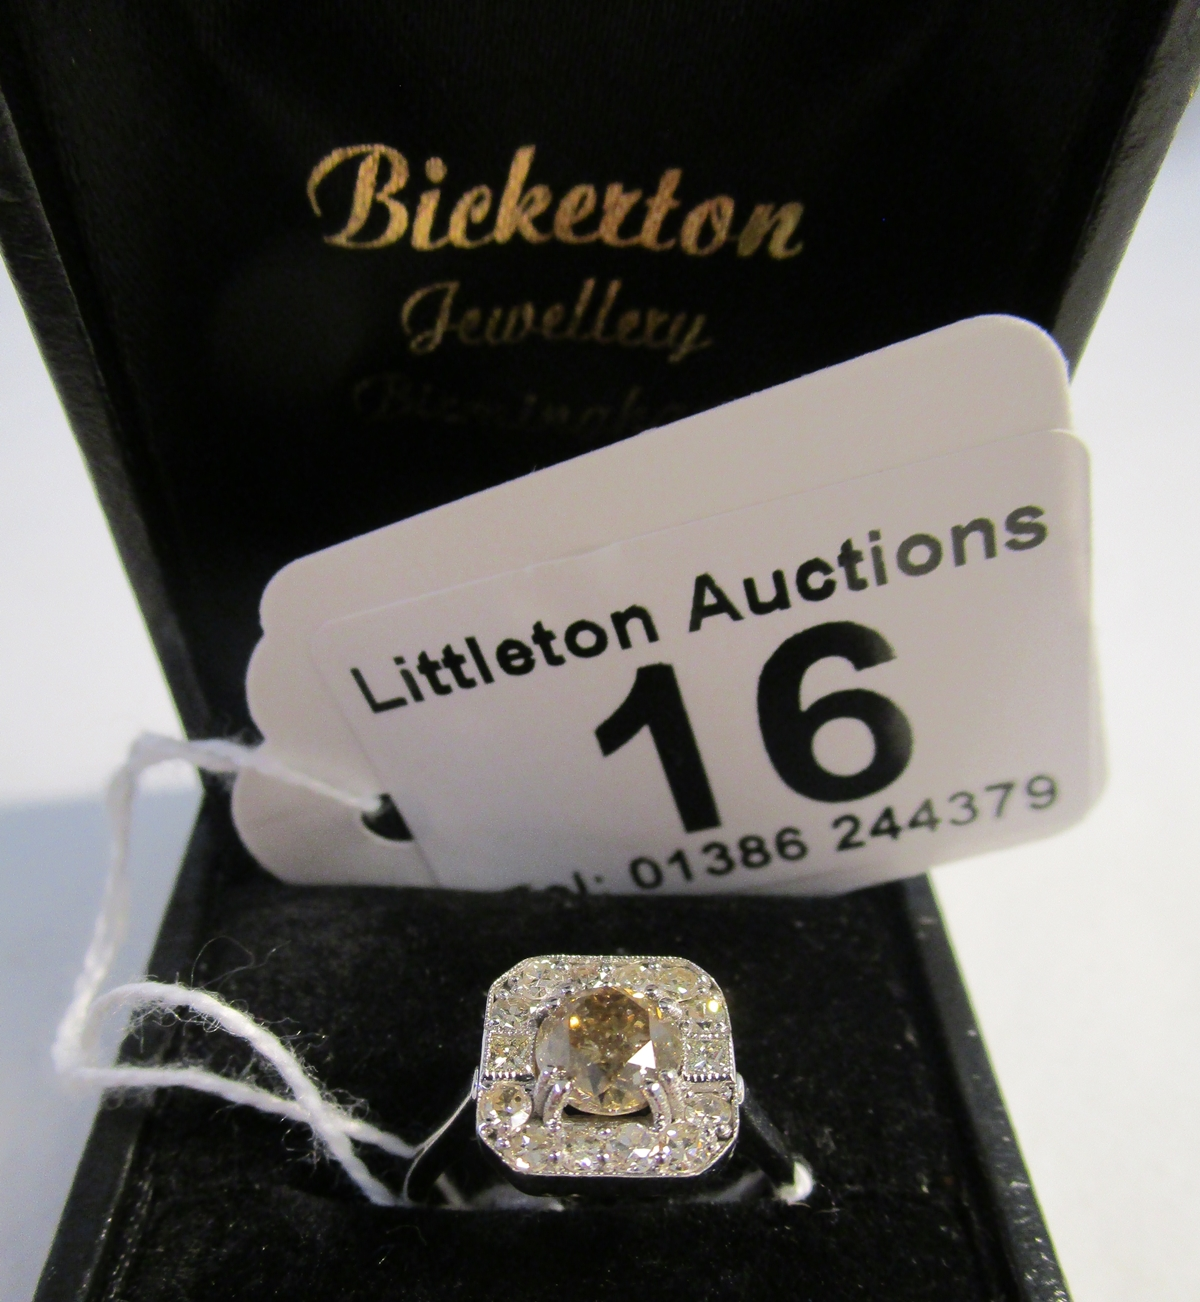 Lot 16 - Fine 18ct white gold cinnamon diamond surrounded by brilliant cut & baguette diamonds